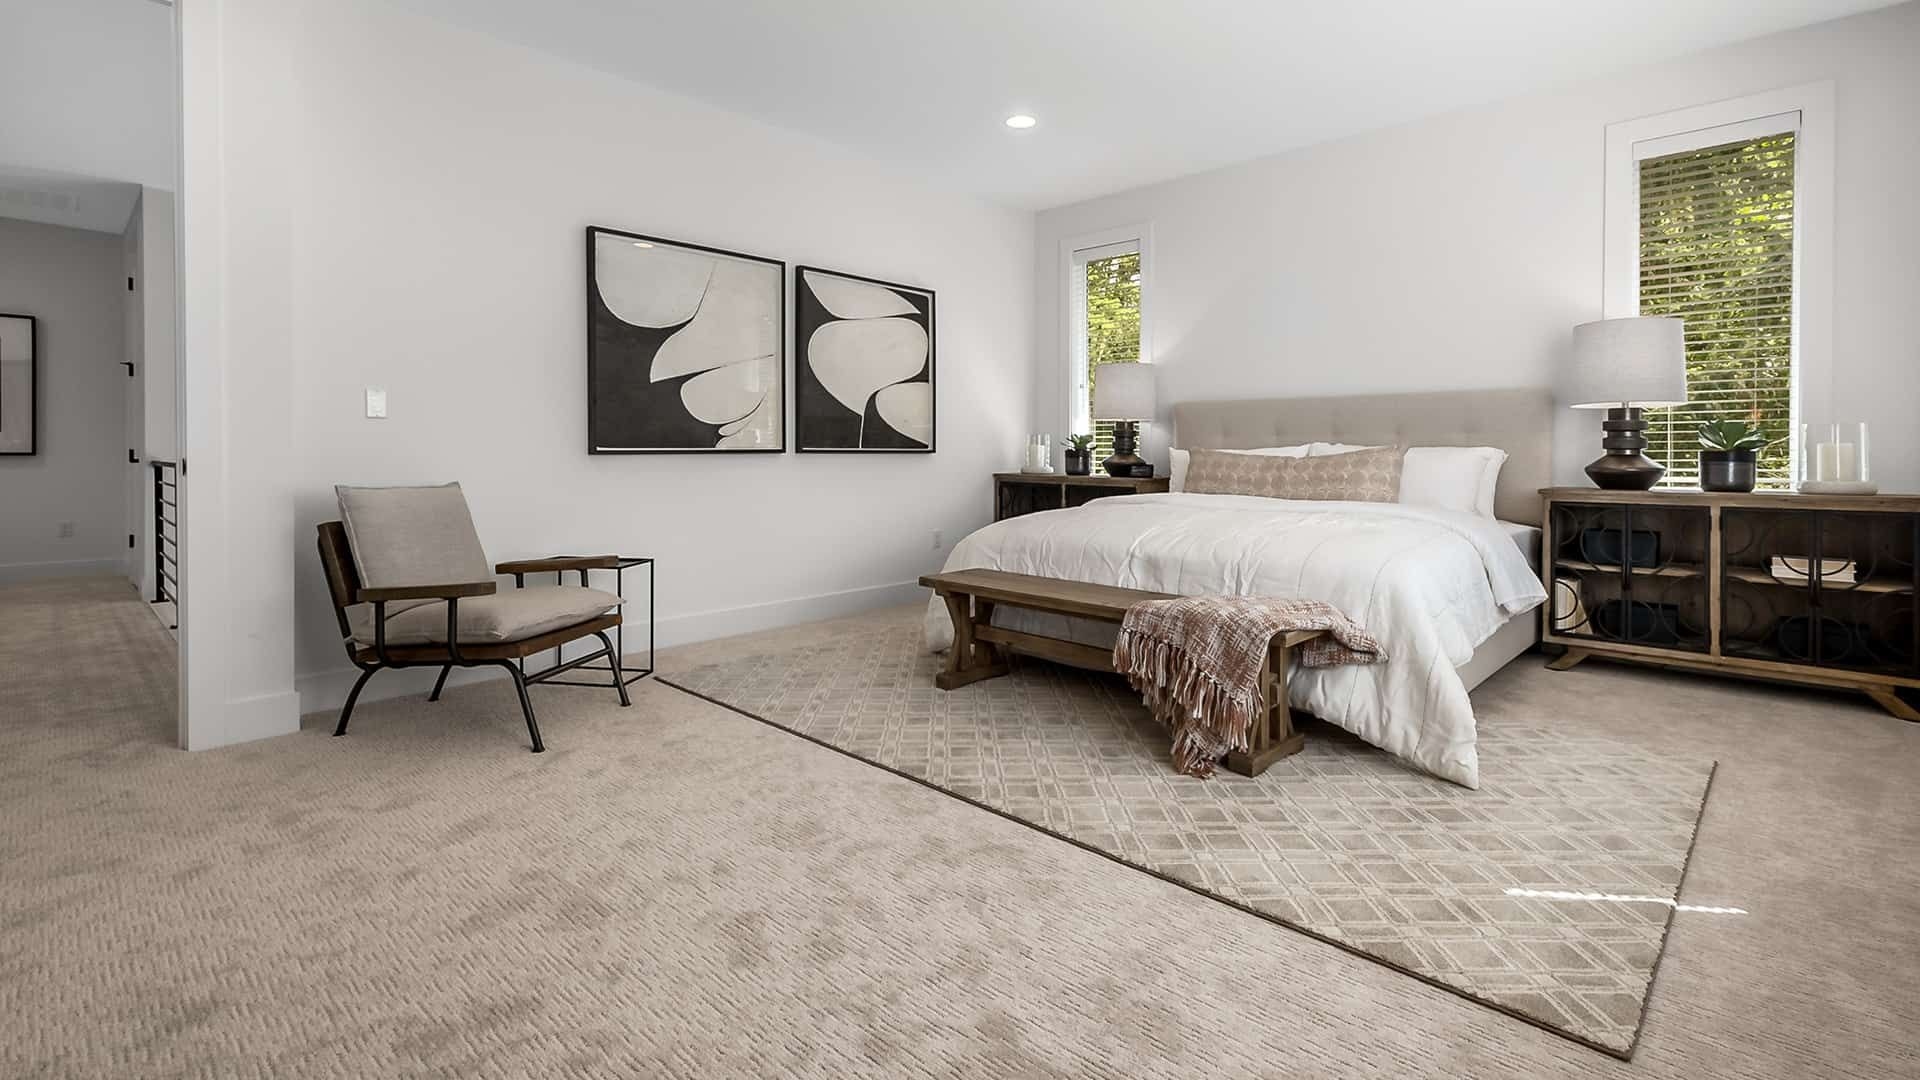 Bedroom featured in the Plan H-341DL By Tri Pointe Homes in Seattle-Bellevue, WA